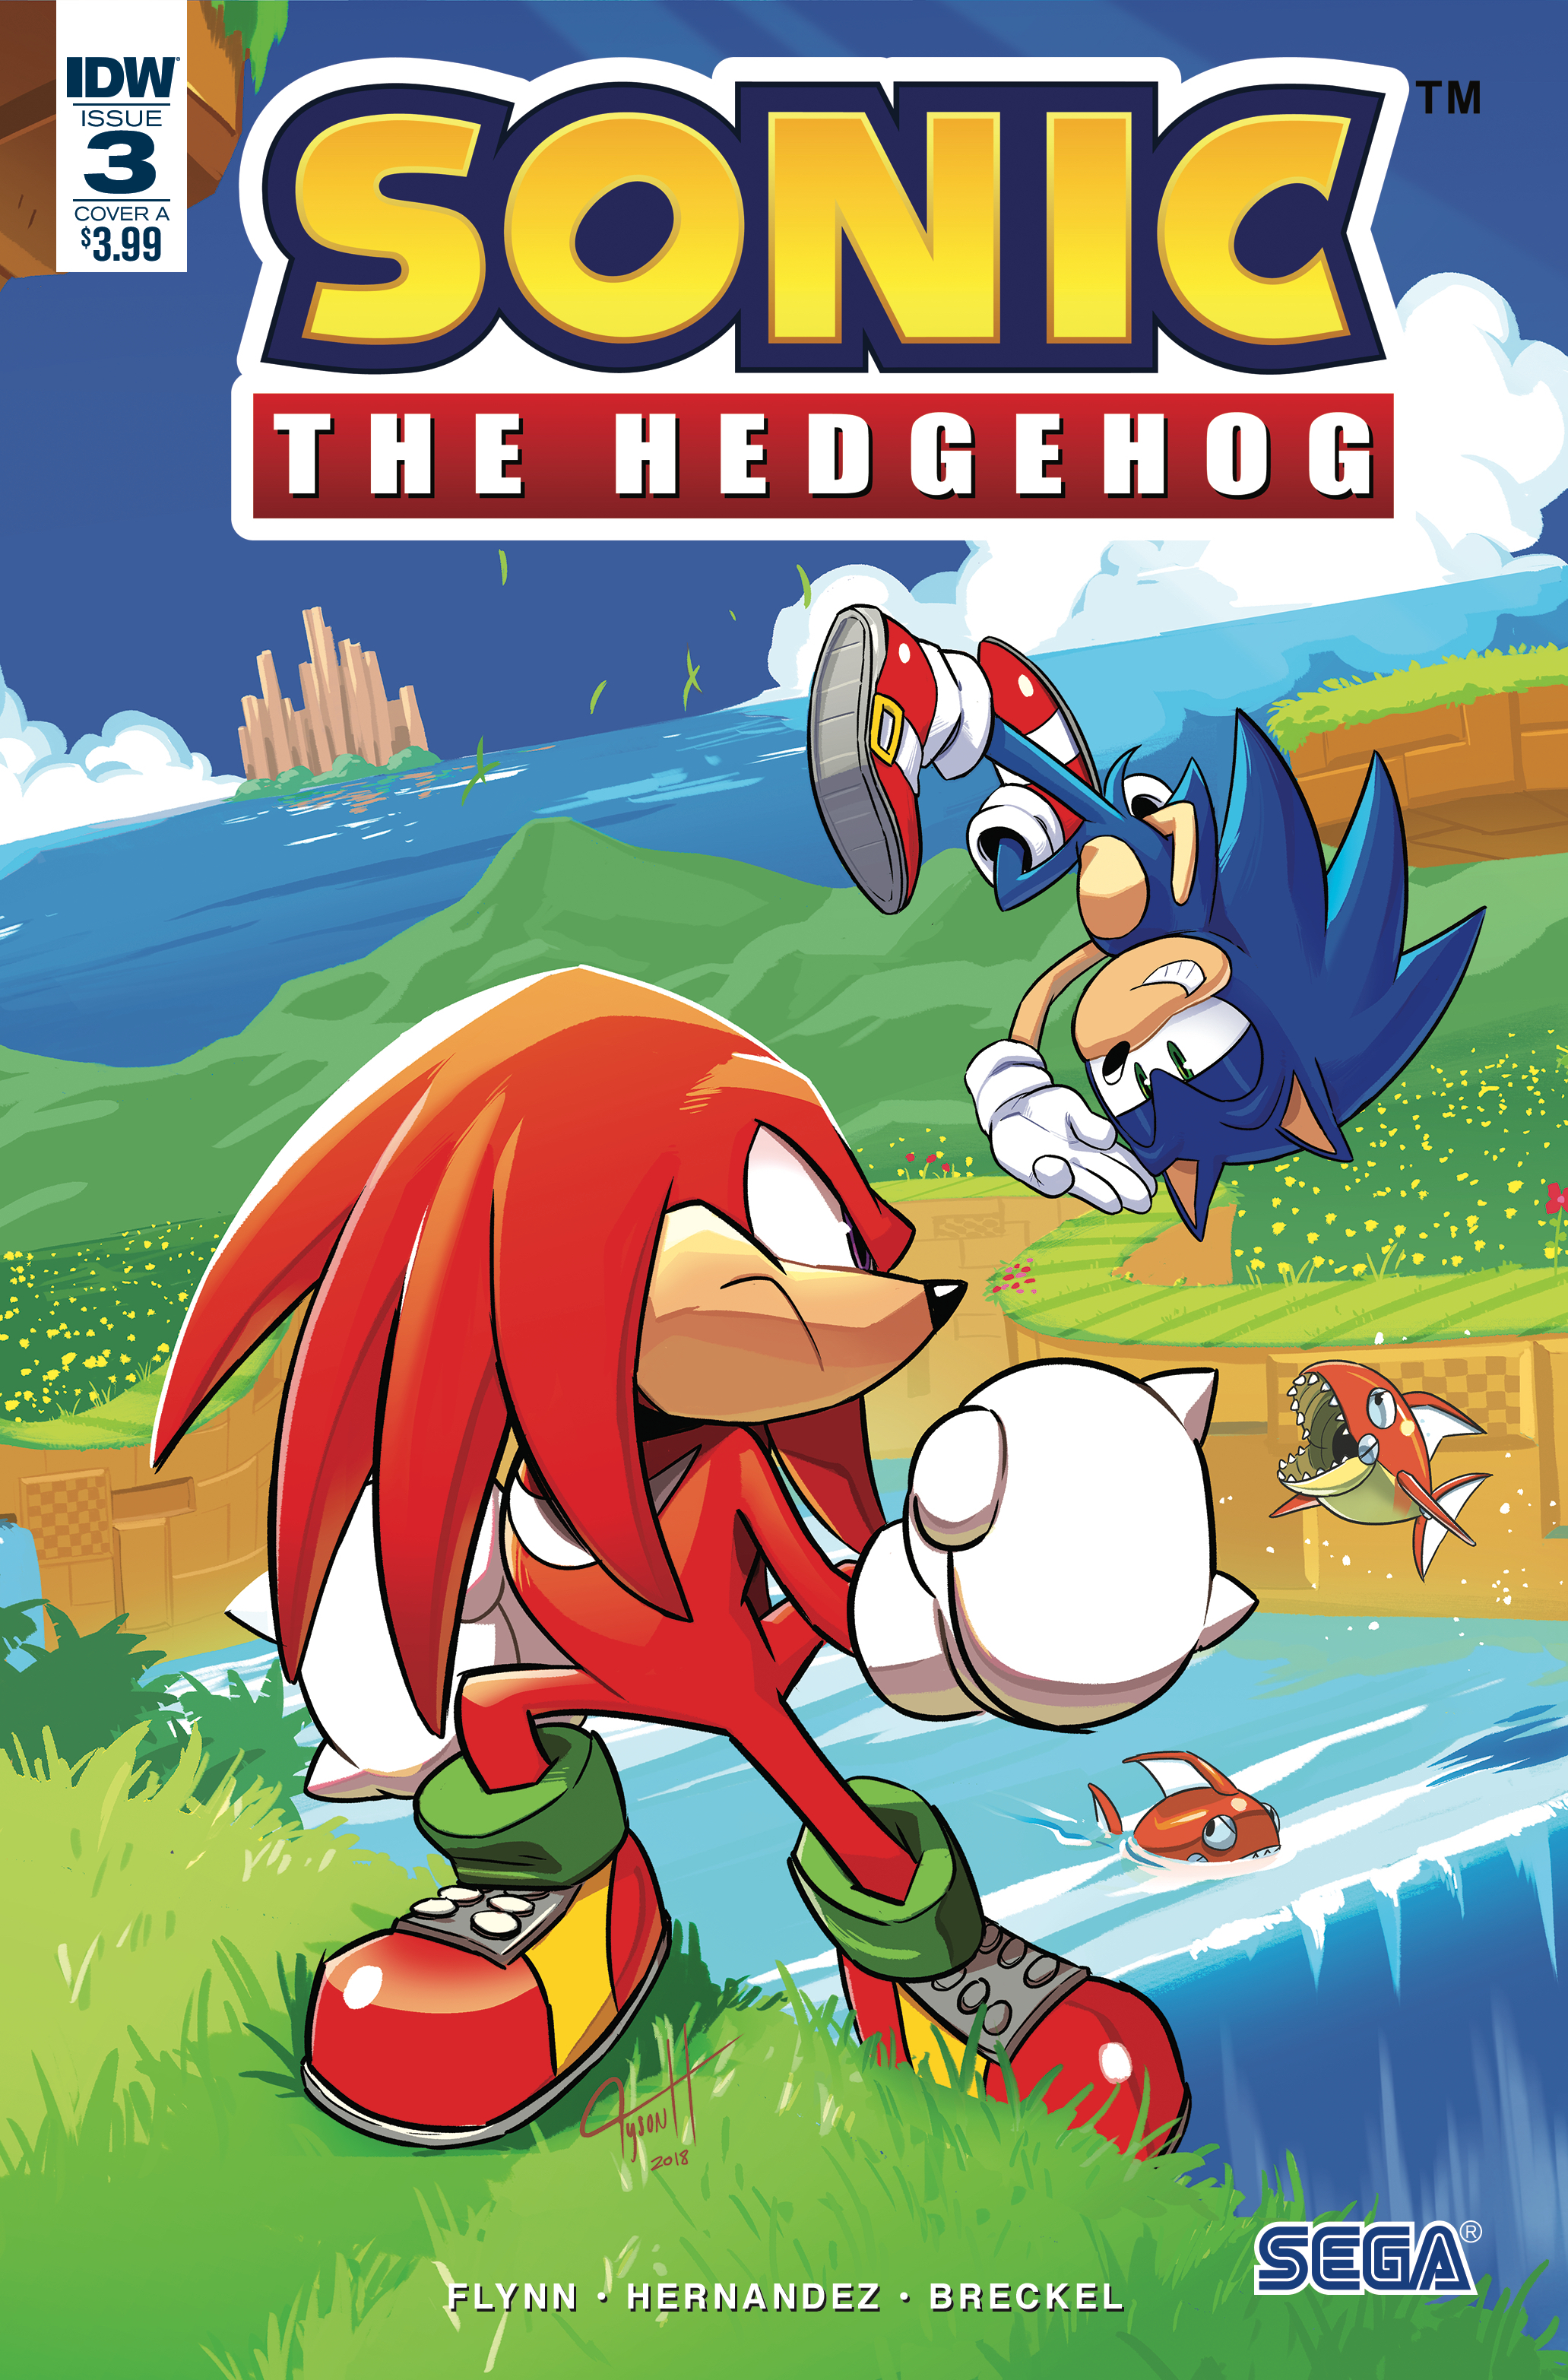 SONIC THE HEDGEHOG #3 CVR A HESSE